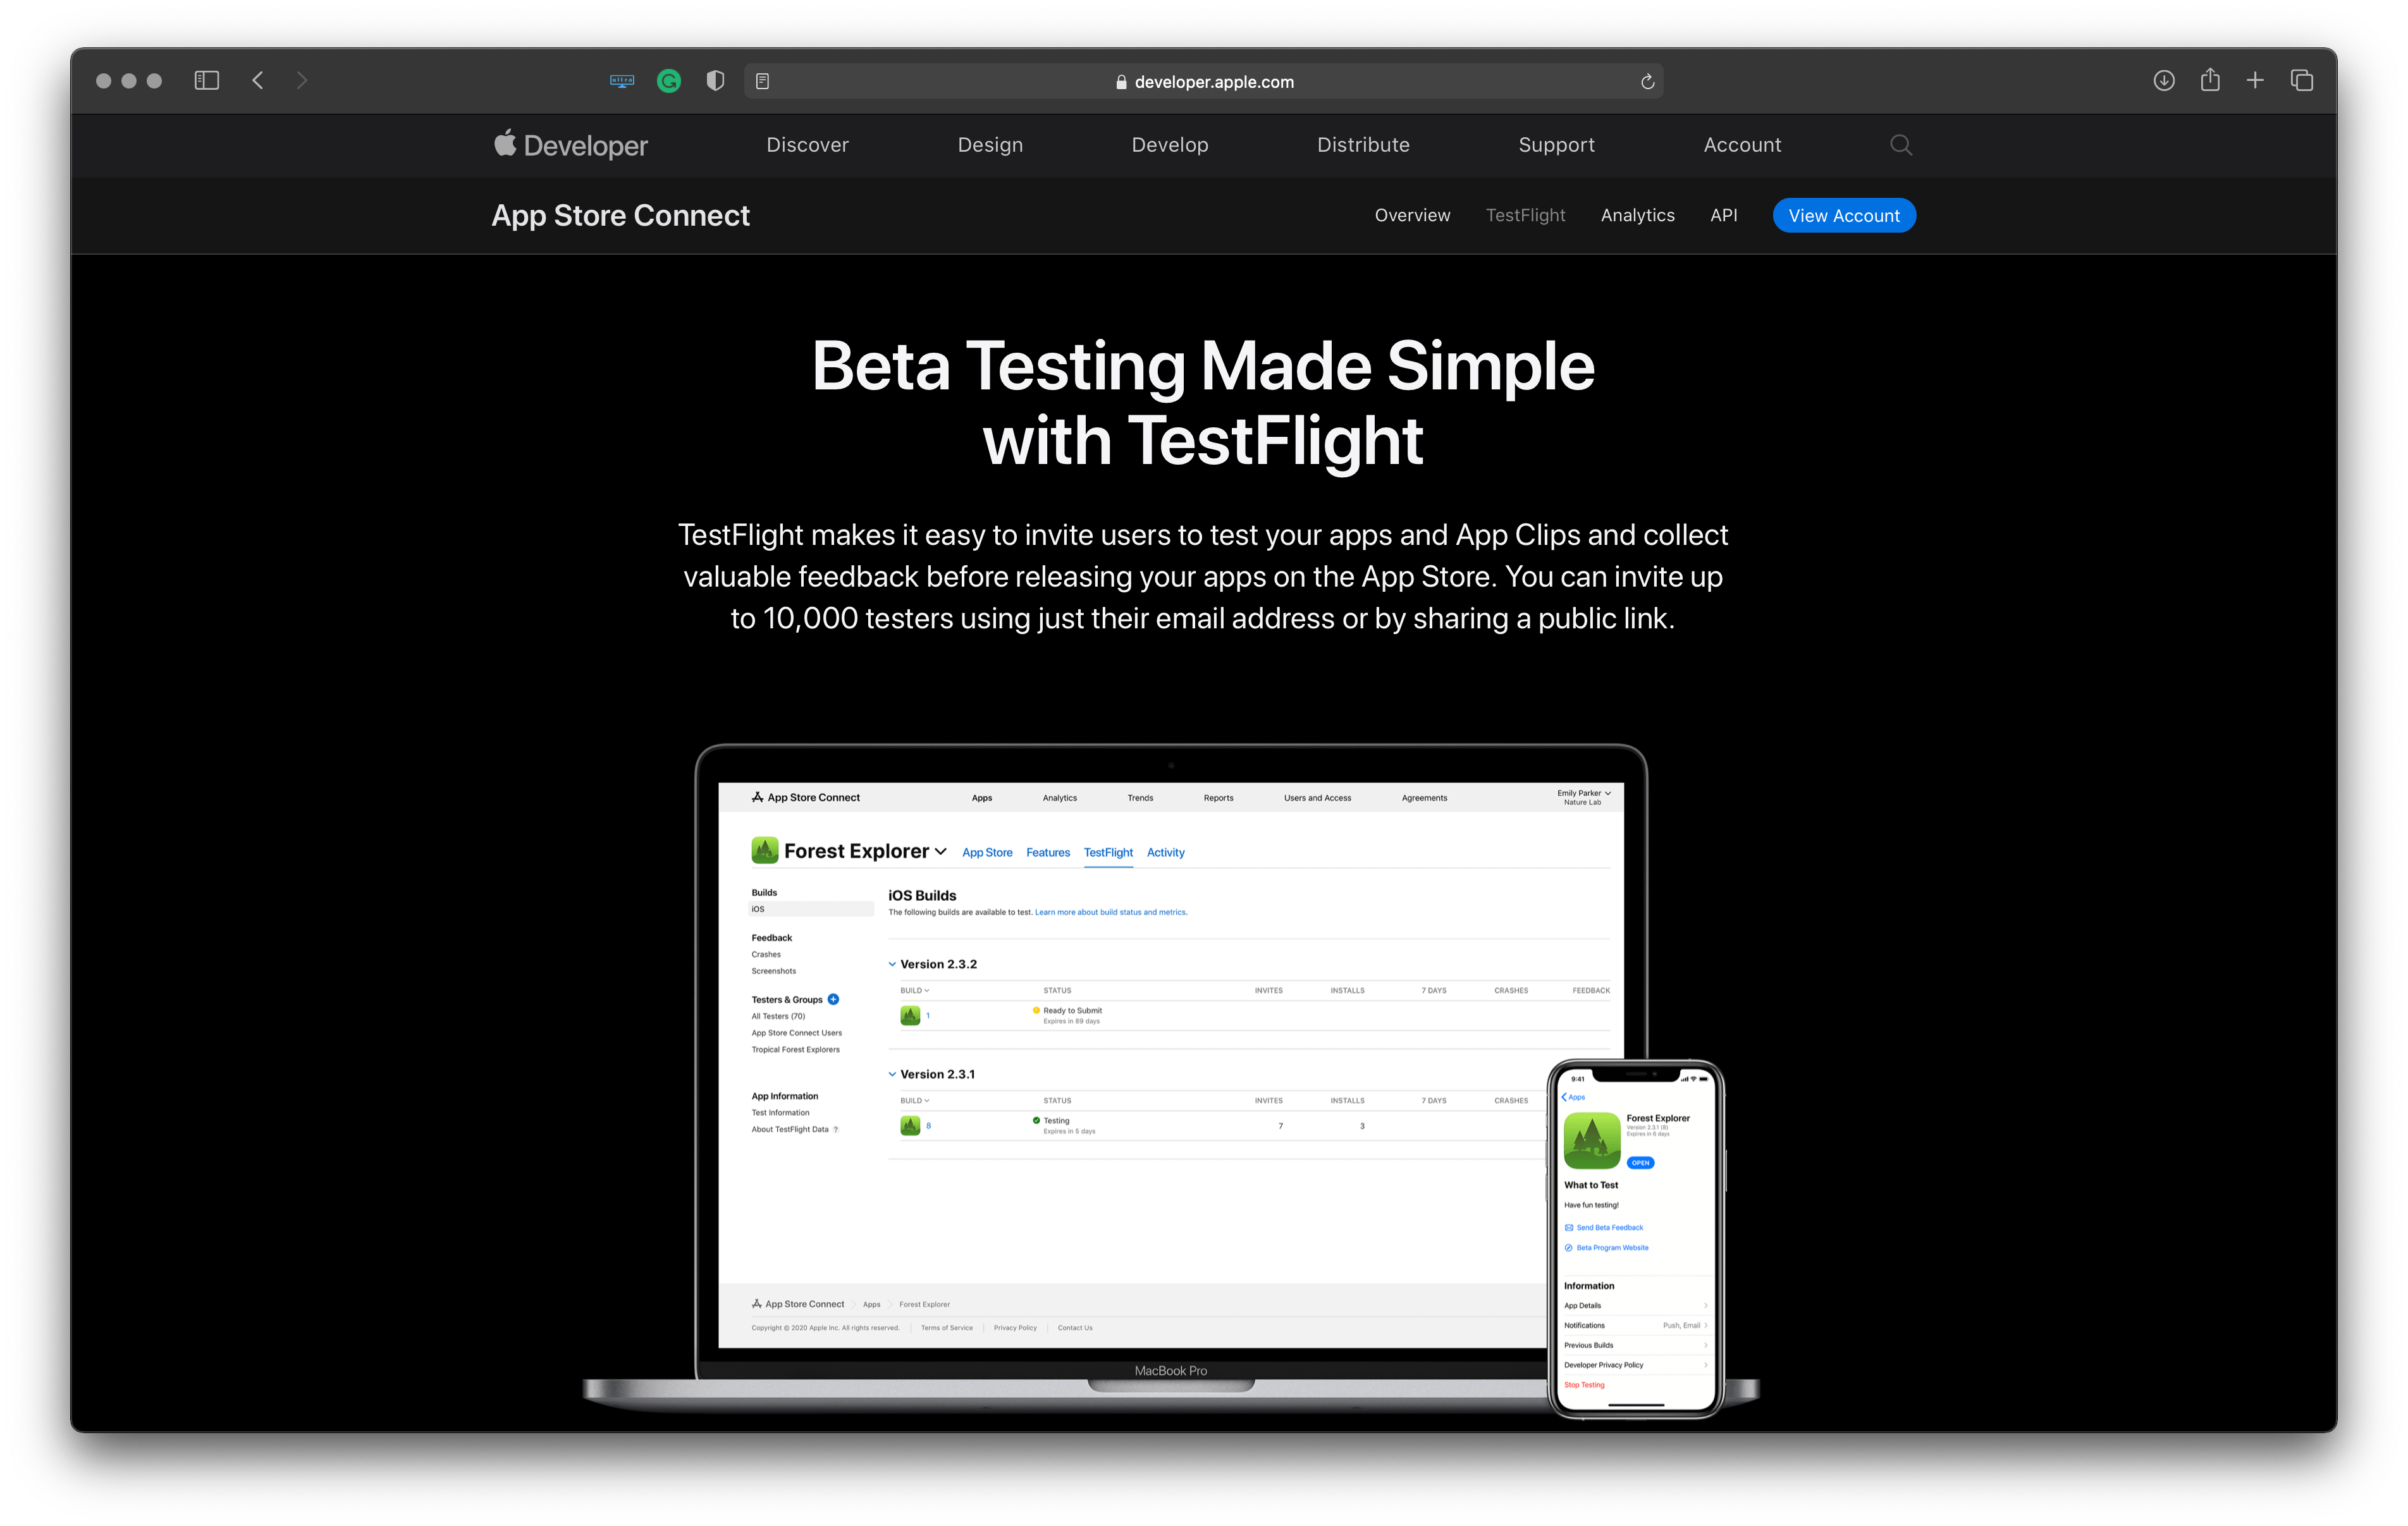 Best tools for Apple platforms developers: testflight – makes it easy to invite users to test your apps and collect feedback